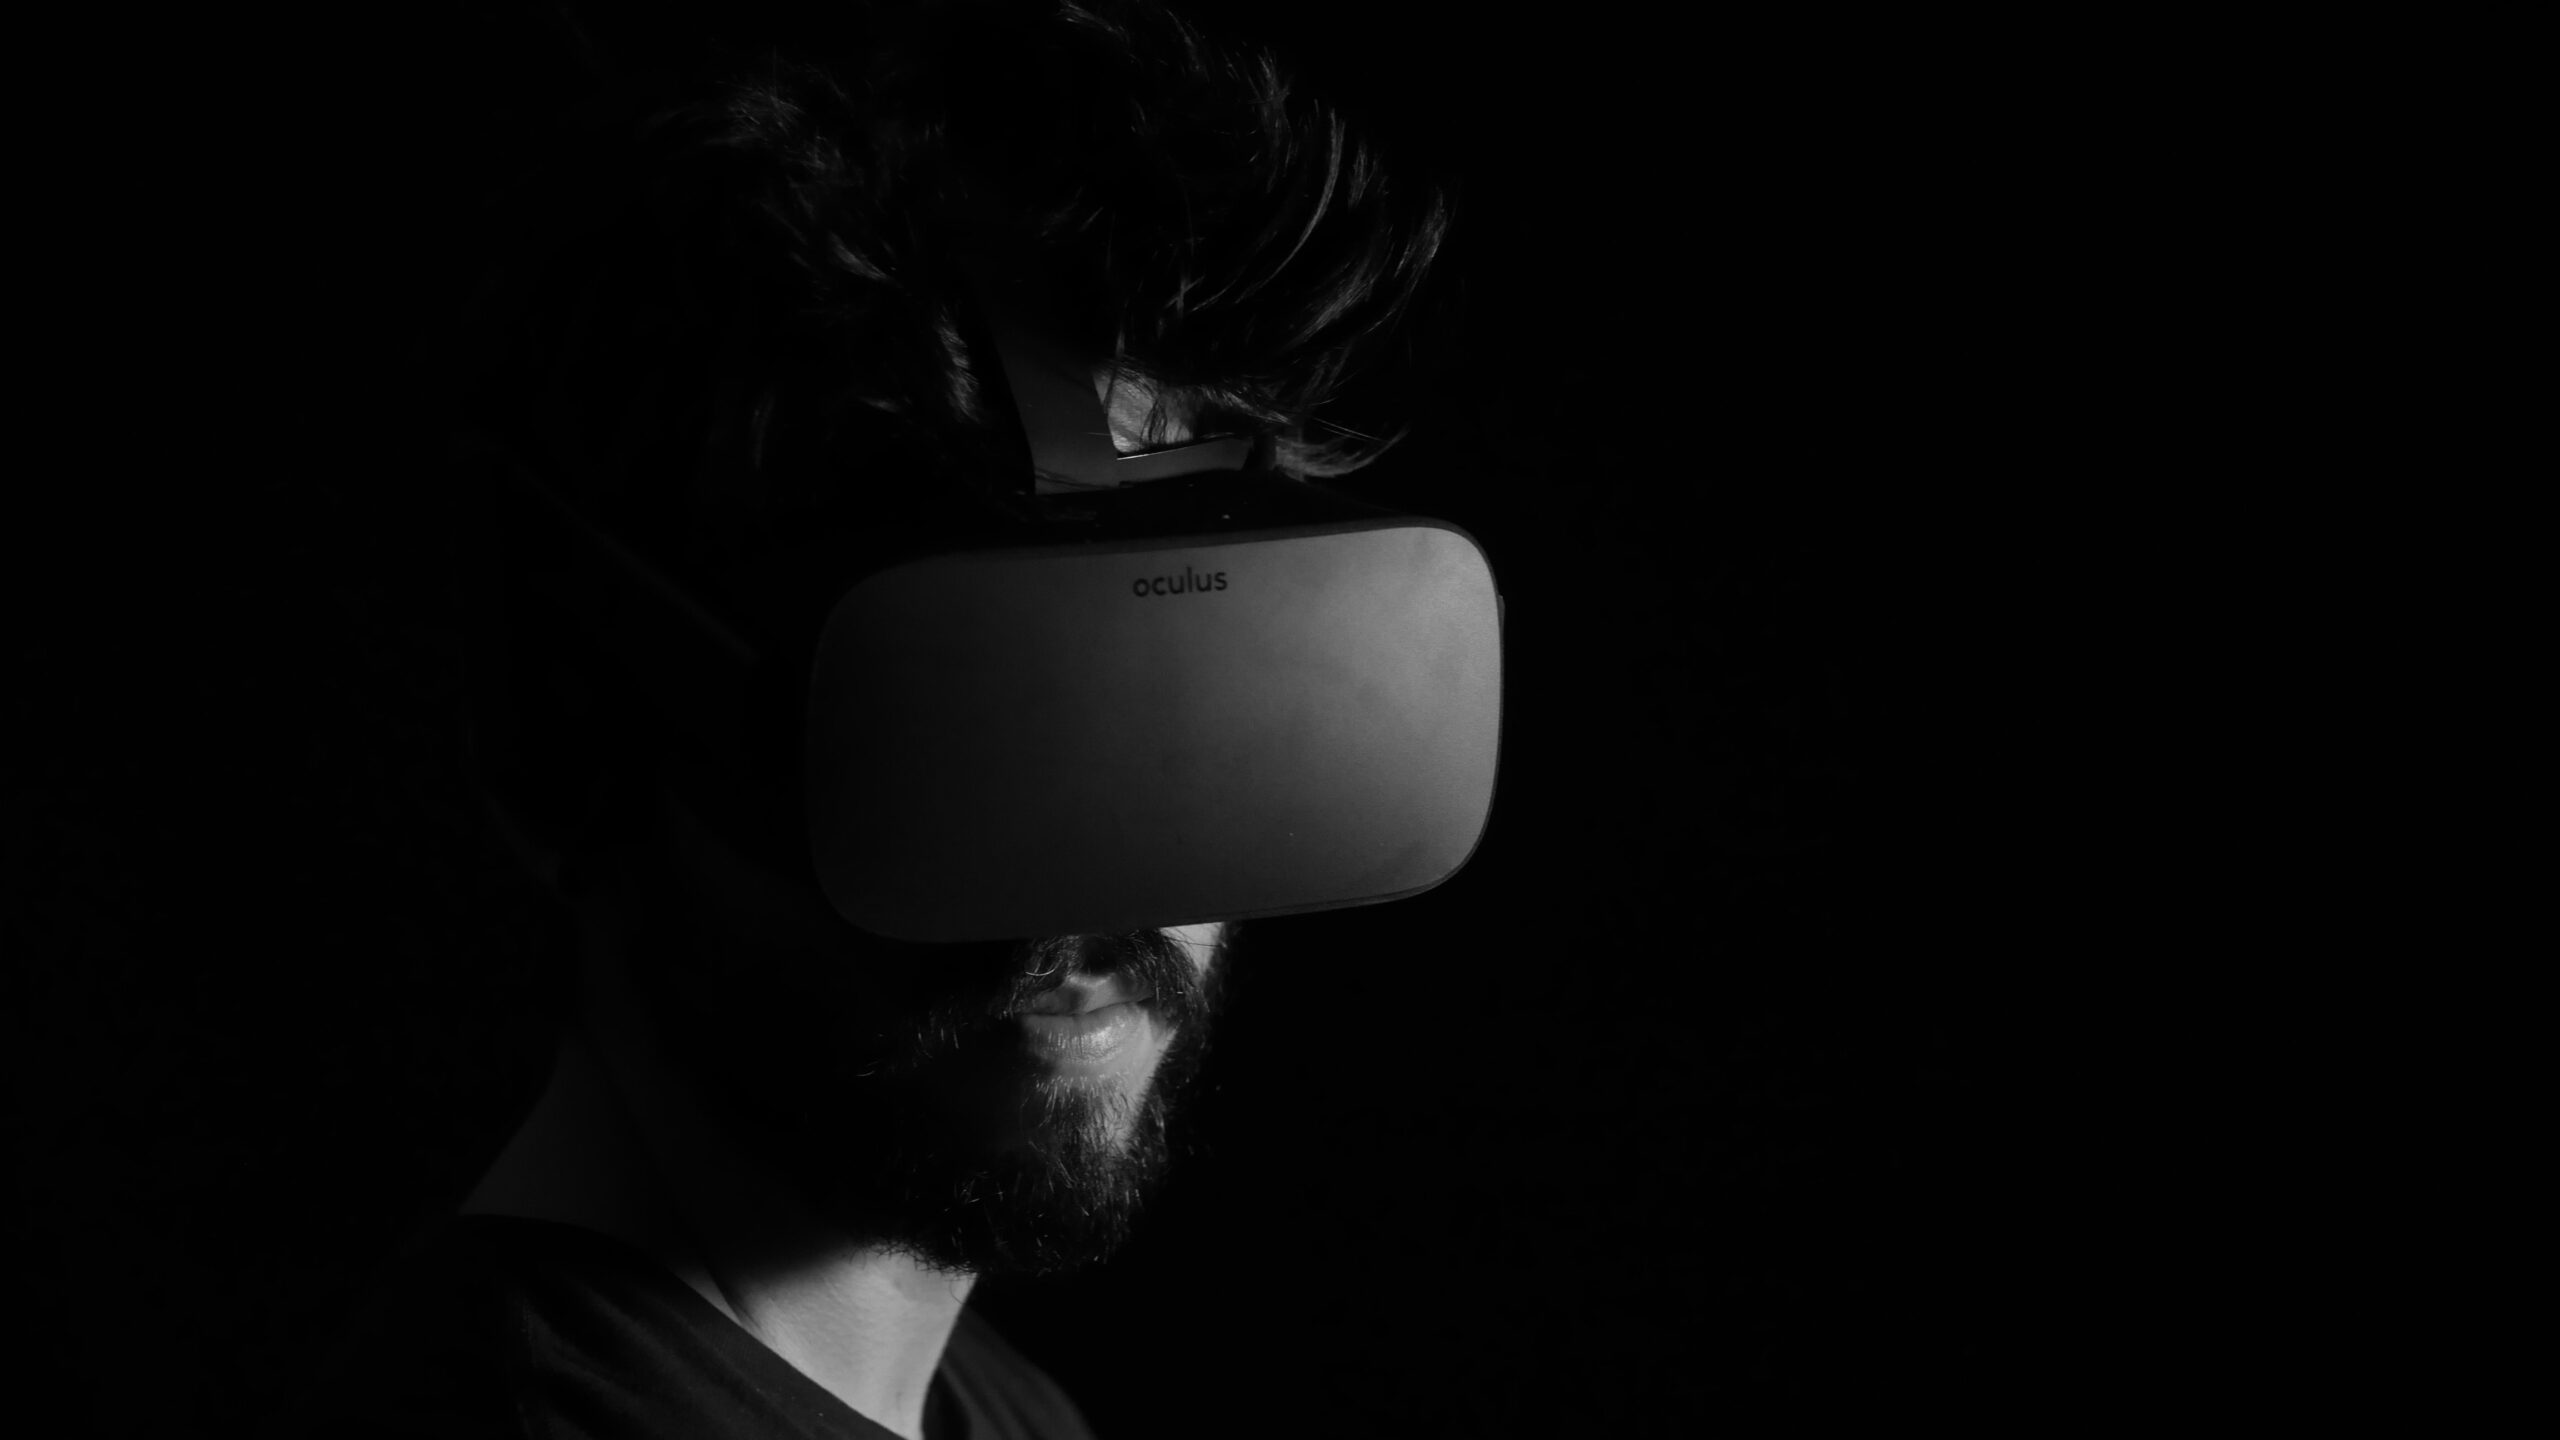 A dark photo of someone wearing VR goggles